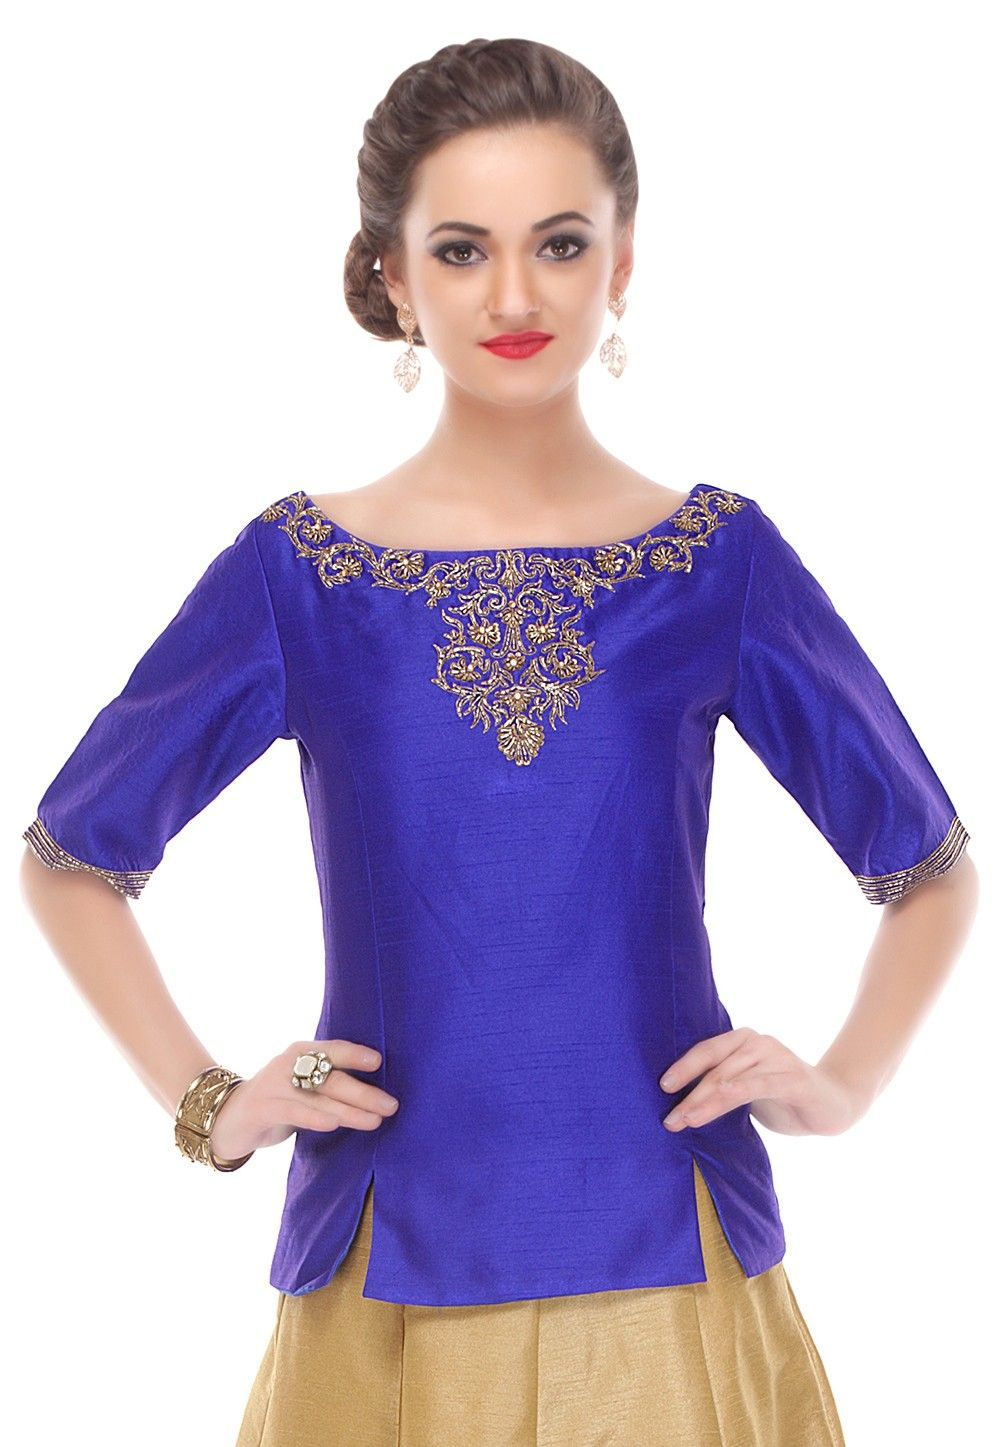 Embroidered Dupion Silk Top in Royal Blue